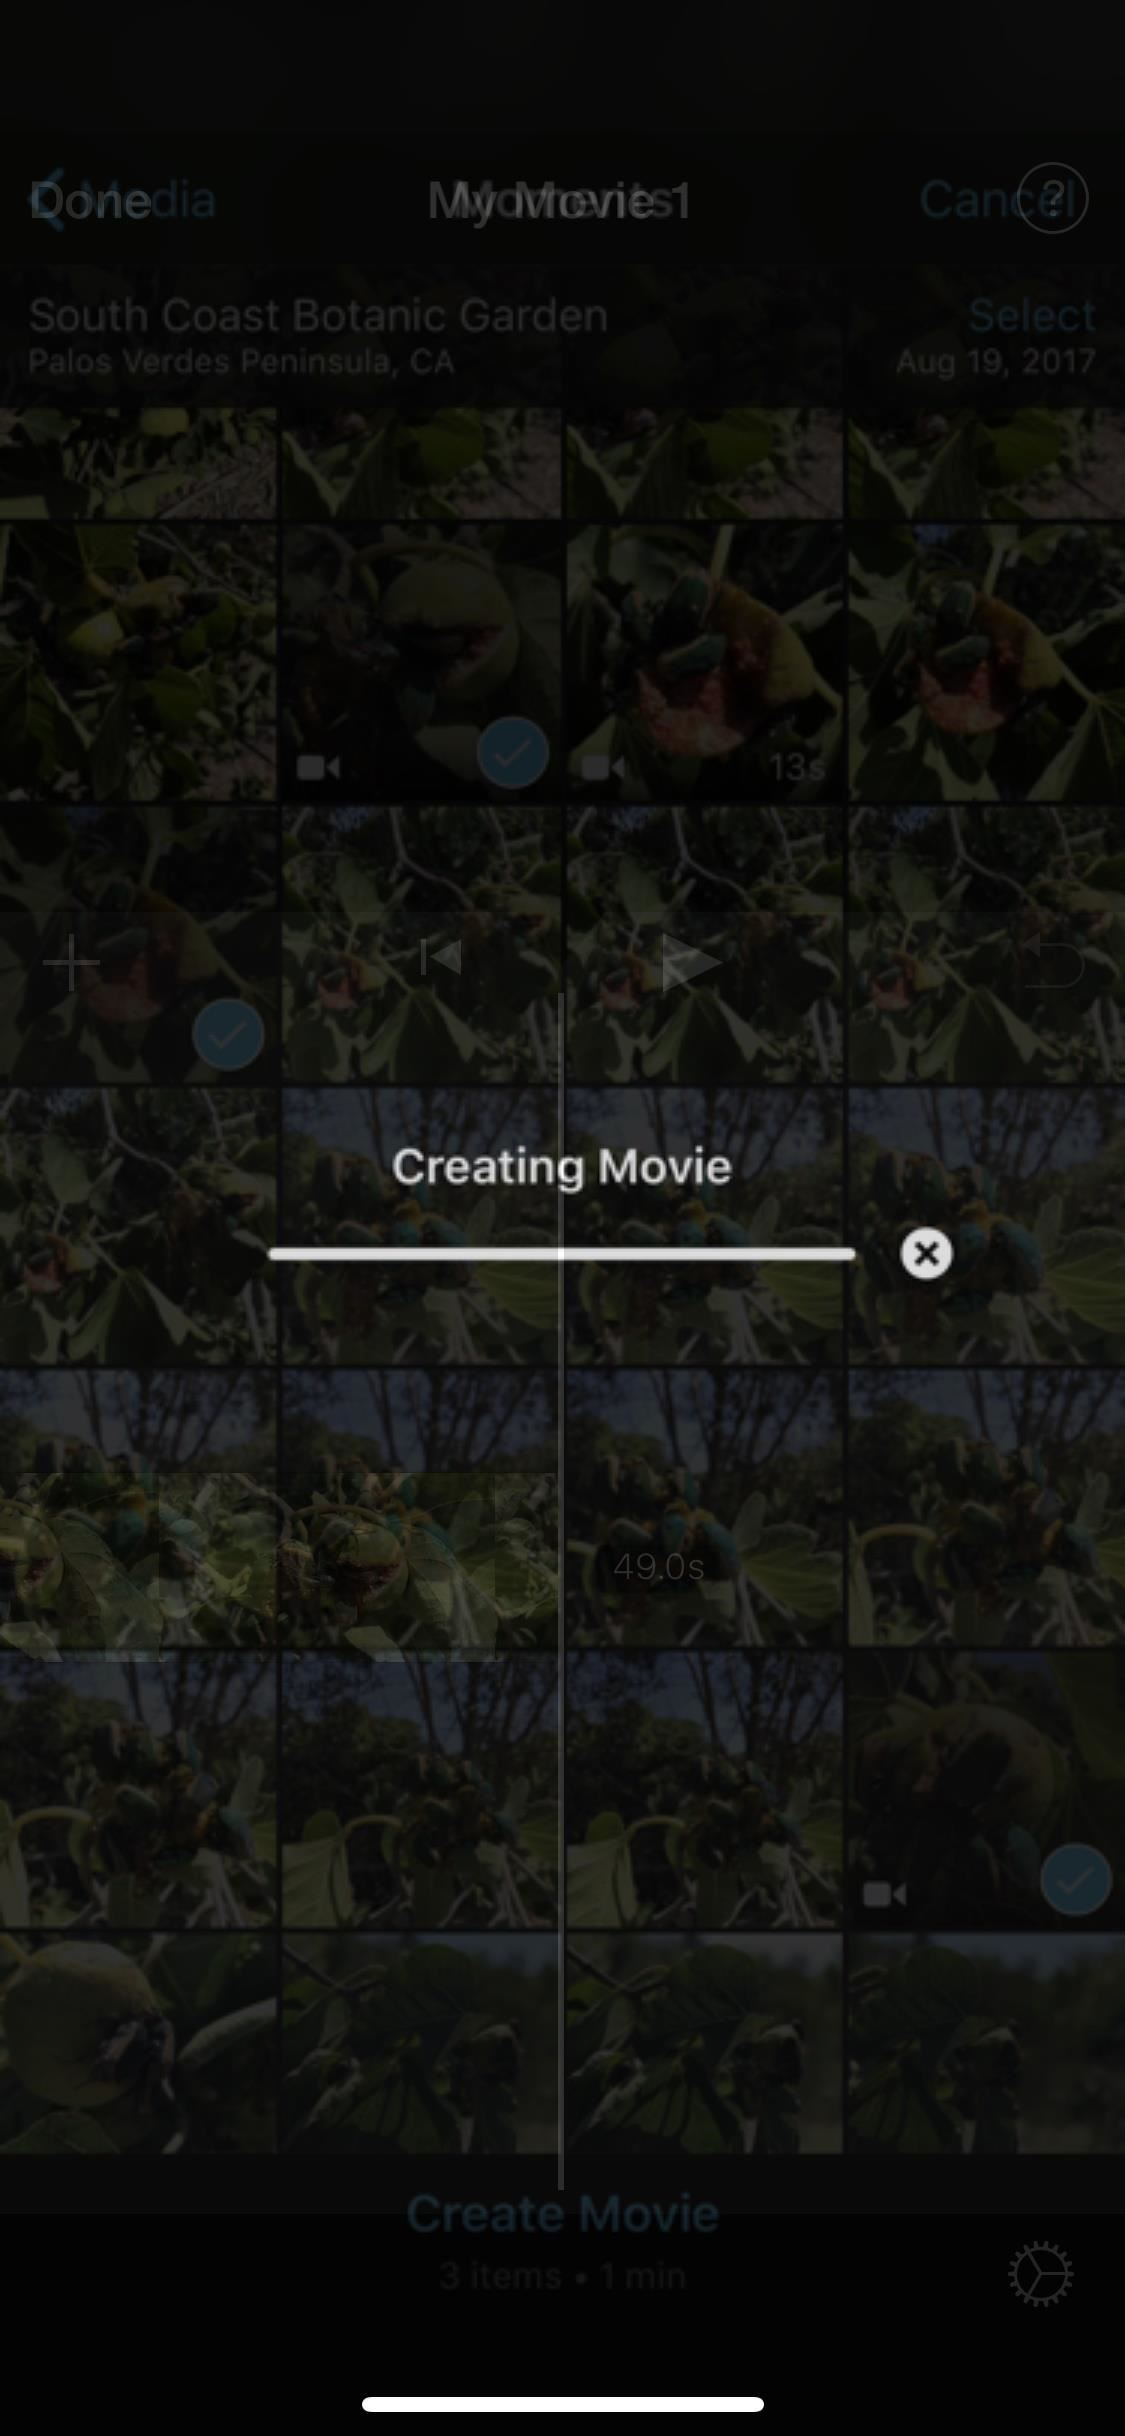 Create a new movie project in iMovie on your iPhone